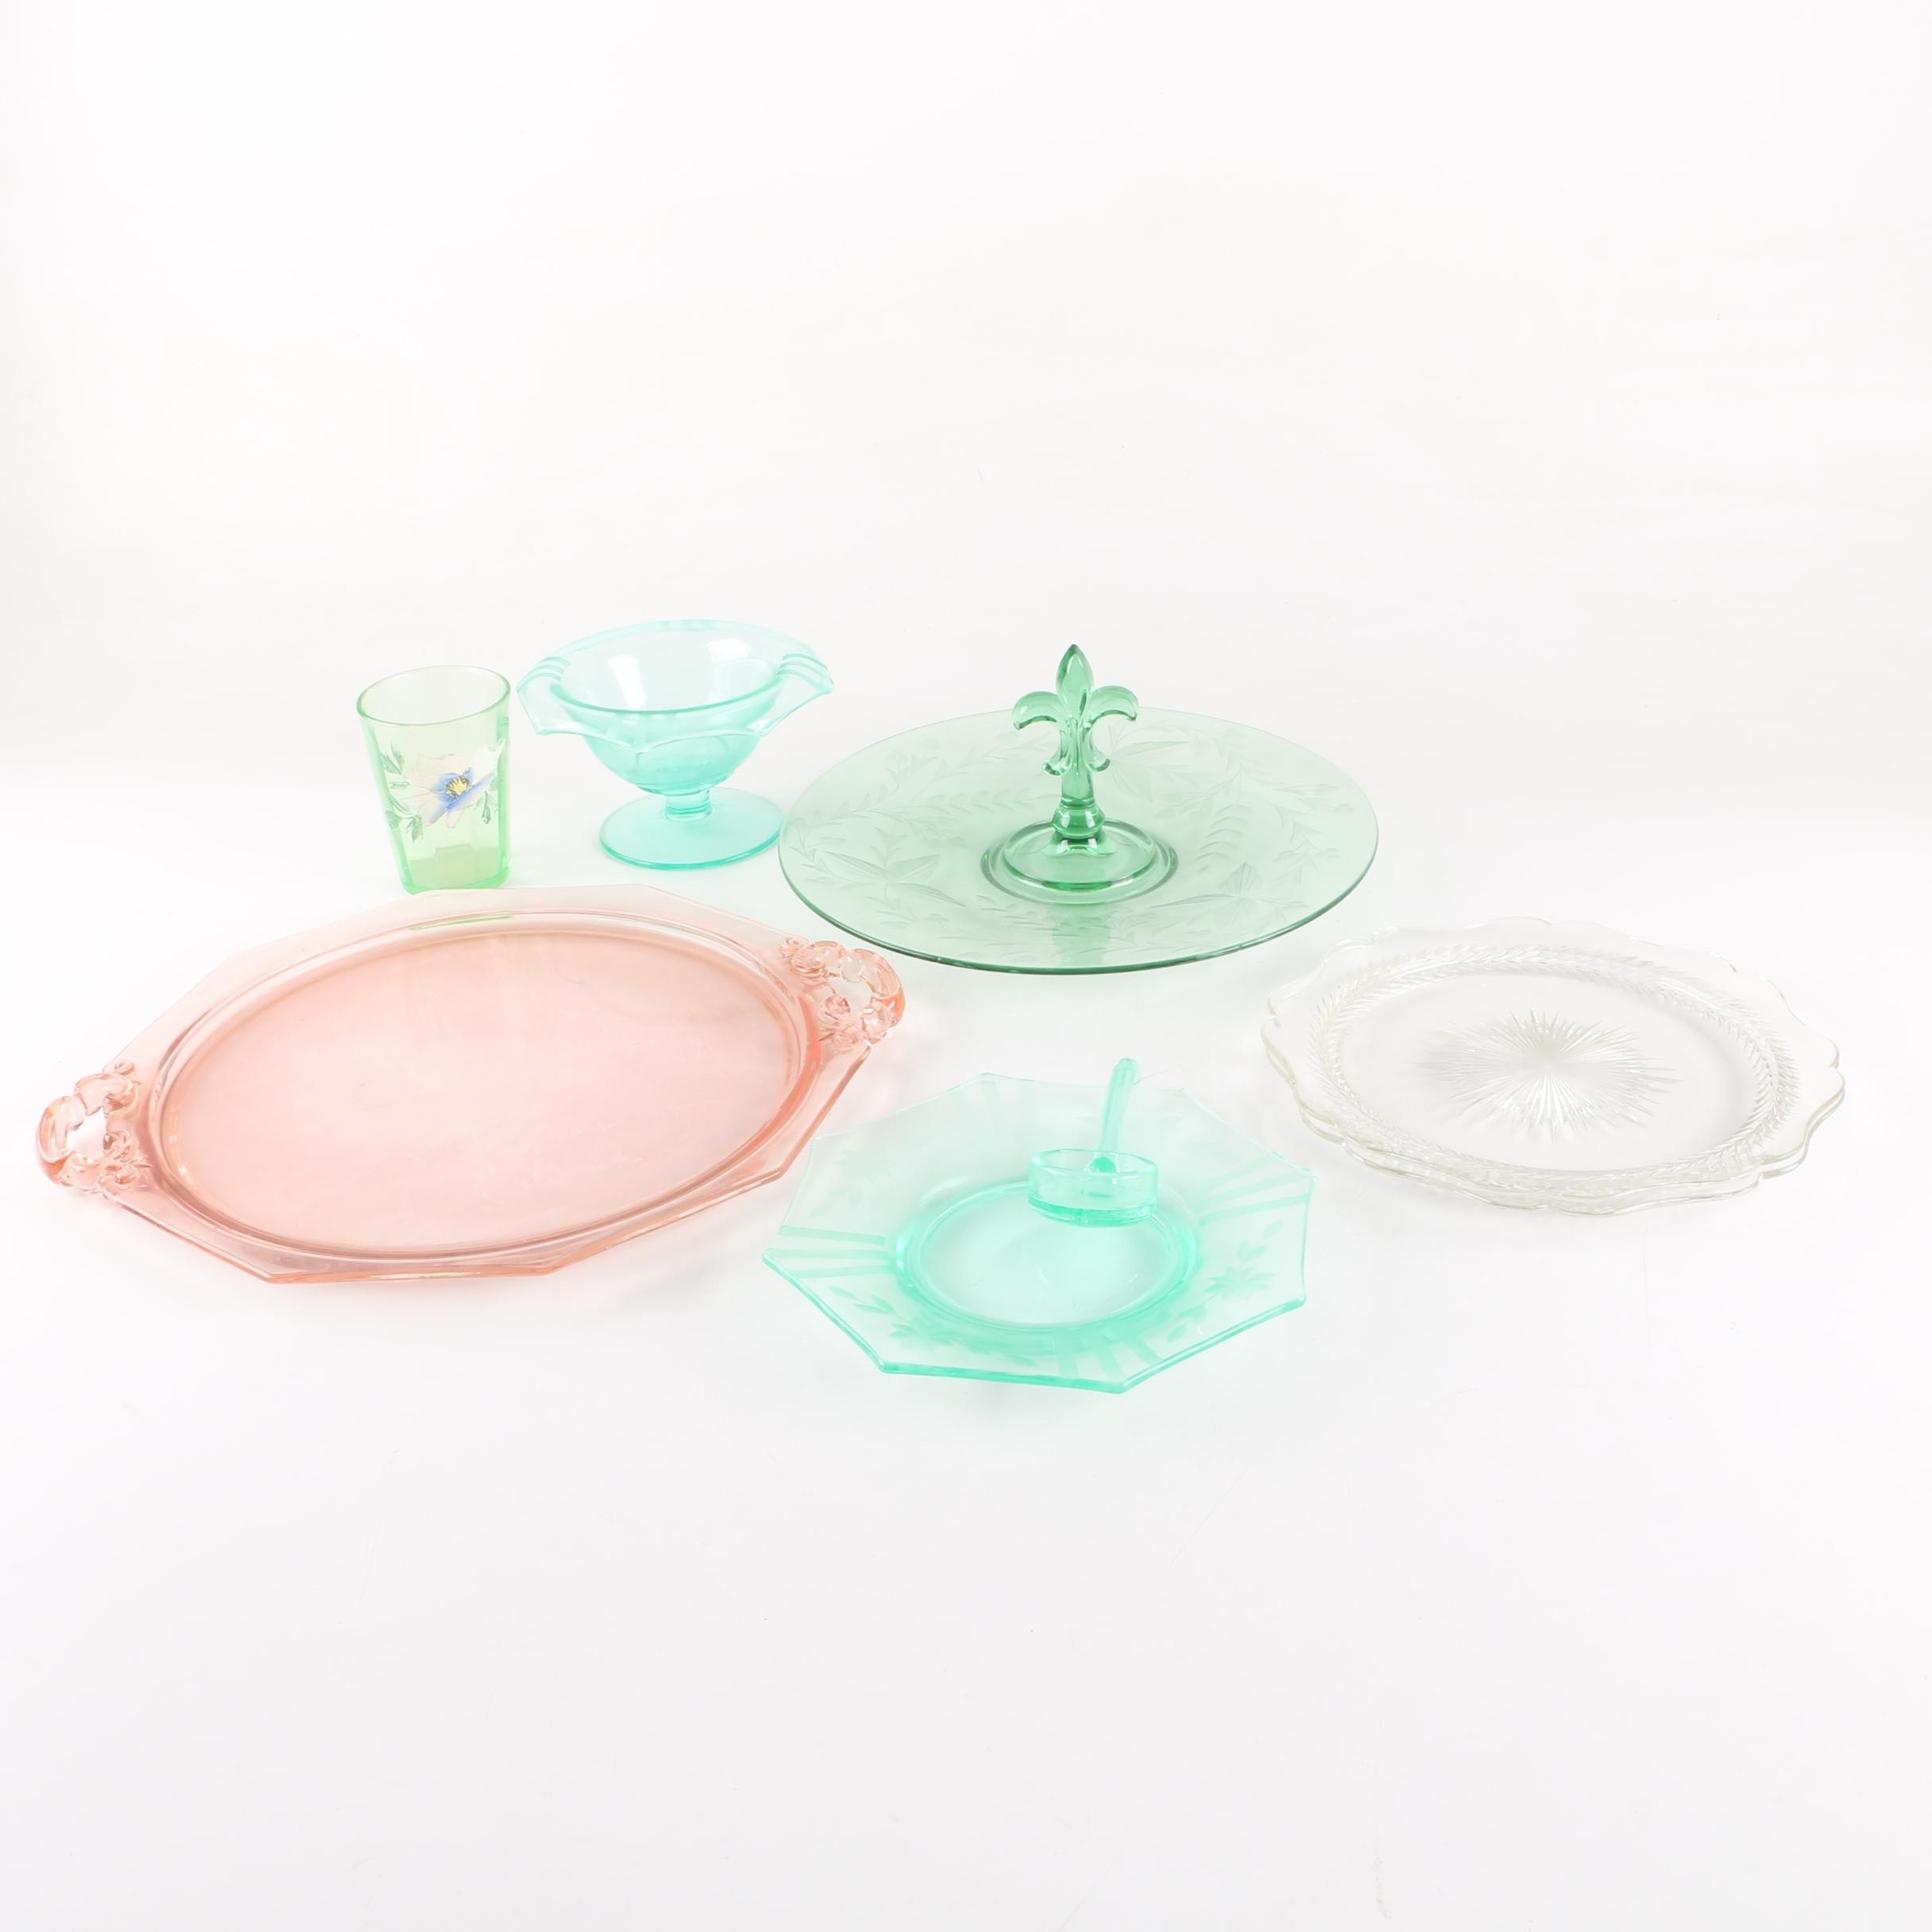 Depression and Etched Glass Serveware and Plates